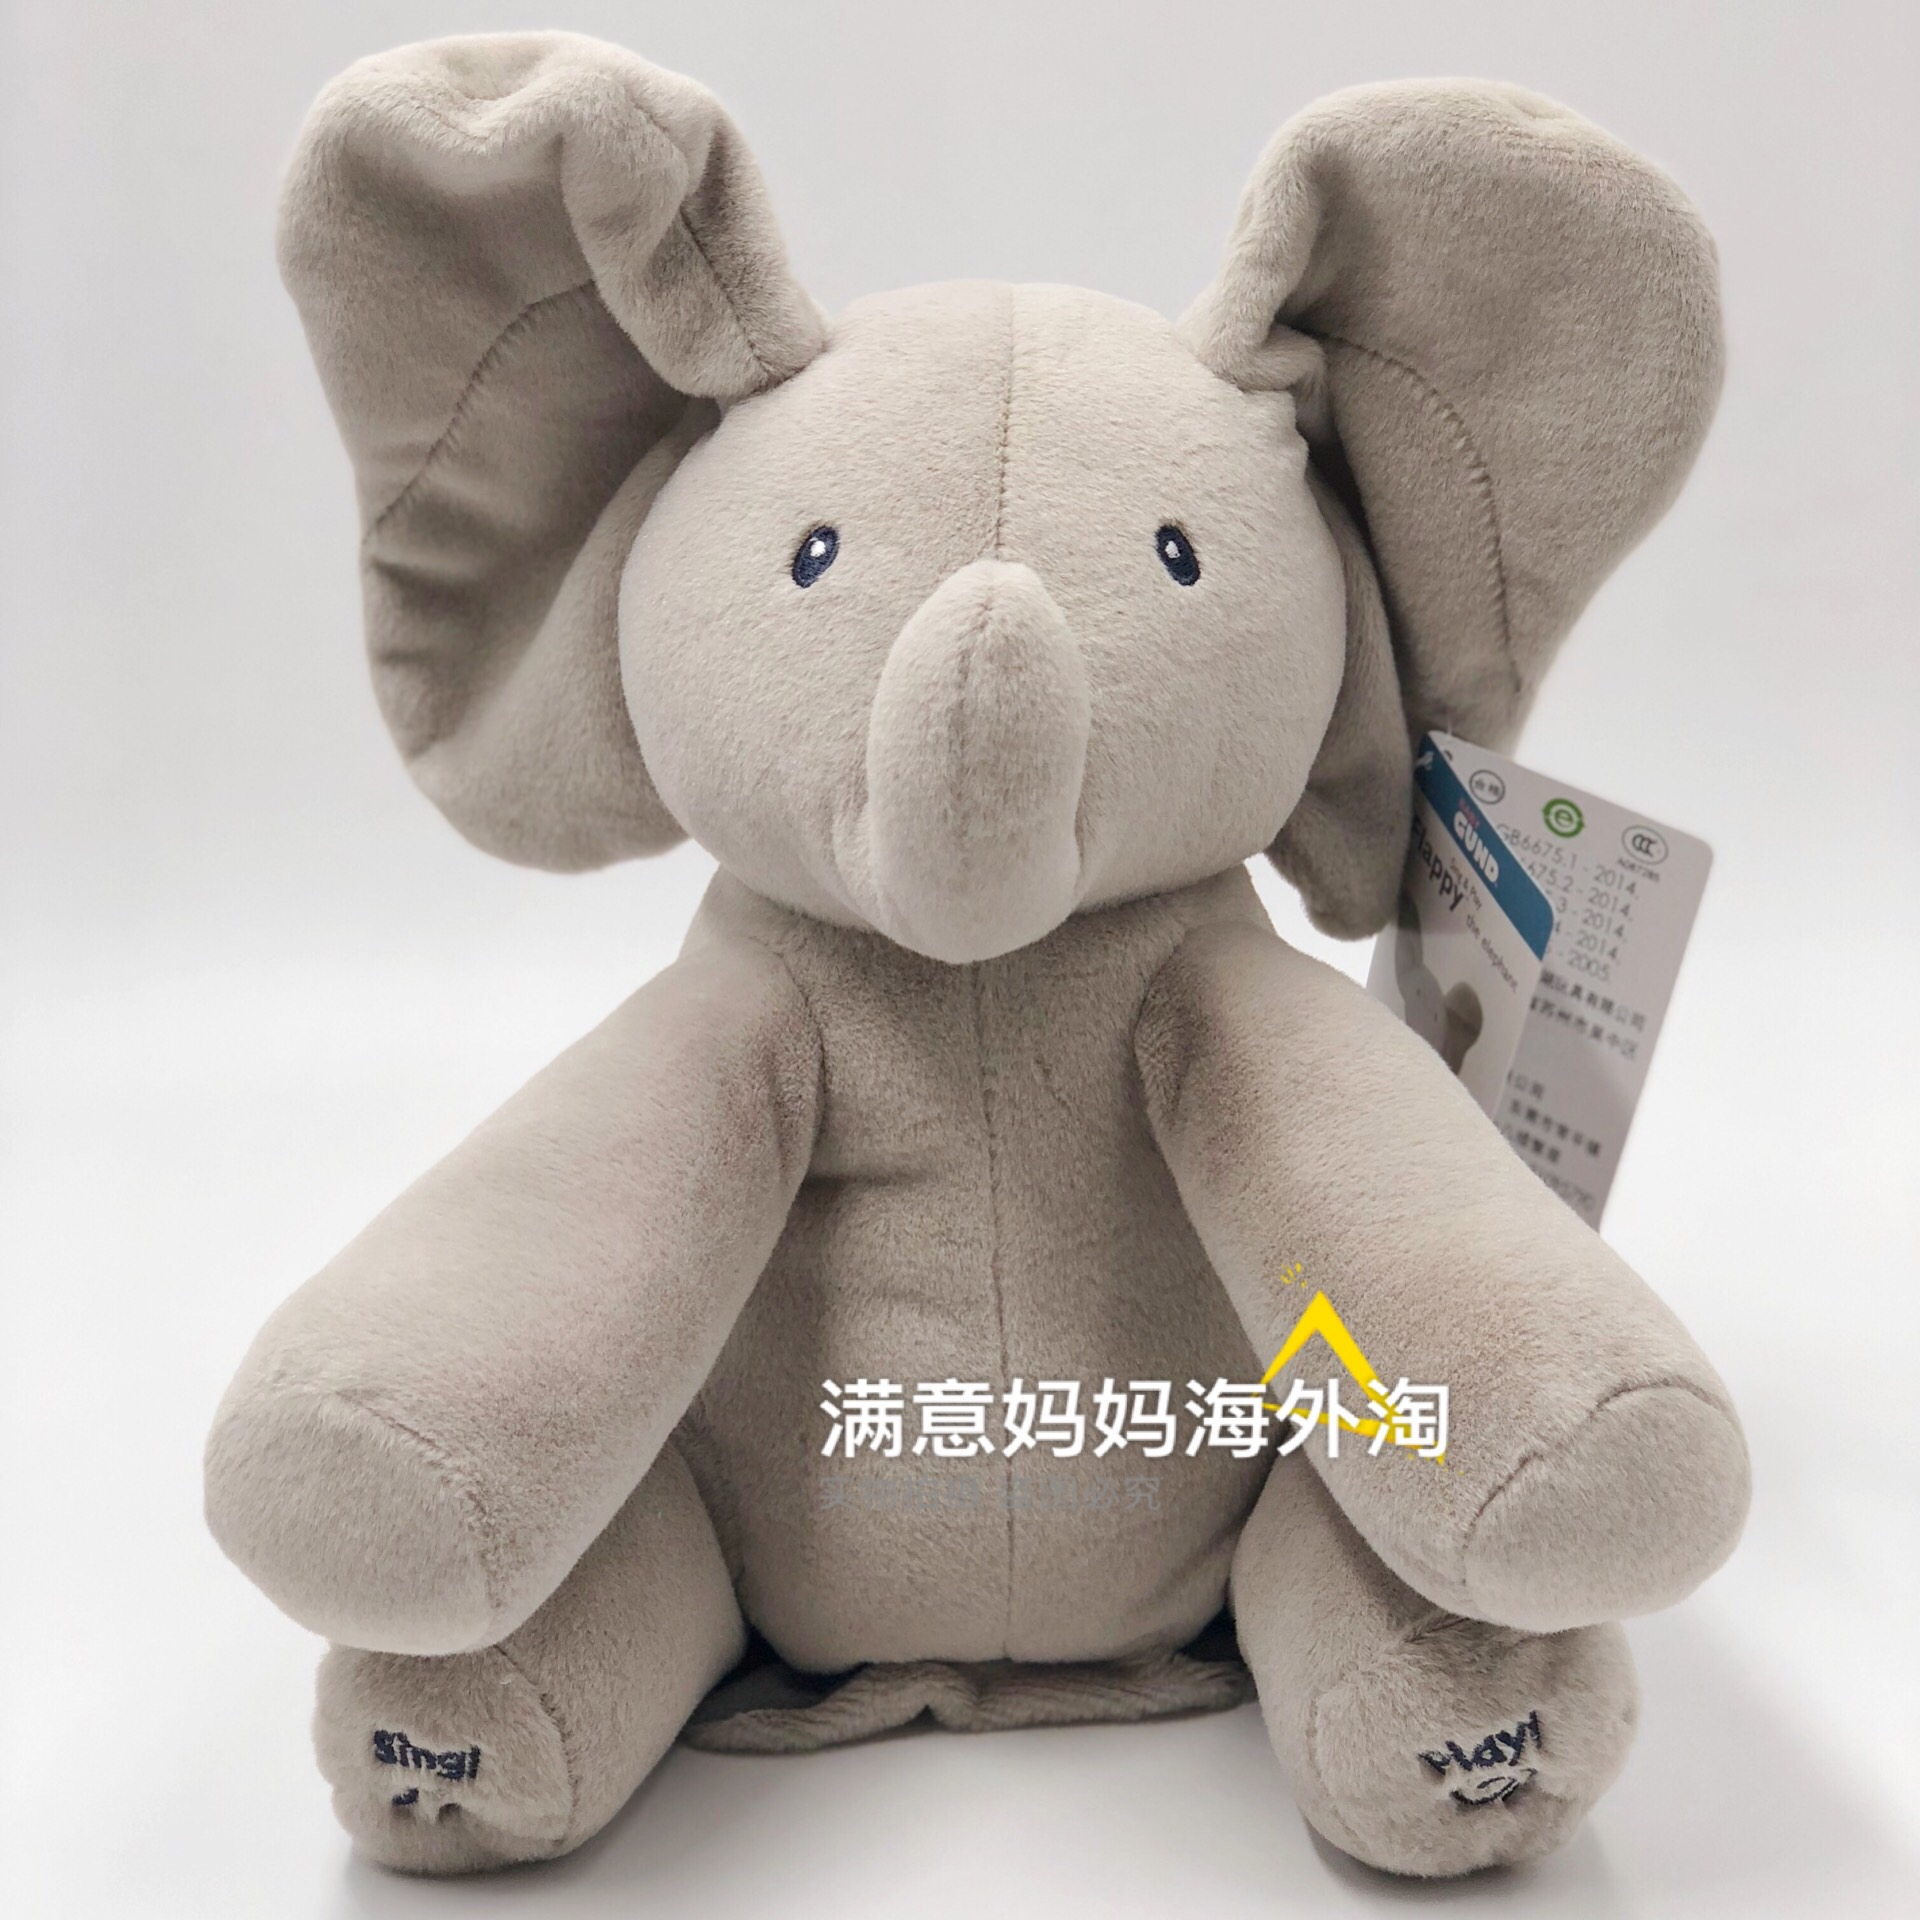 Usd 78 50 American Gund Shy Baby Elephant Children Appease Toys